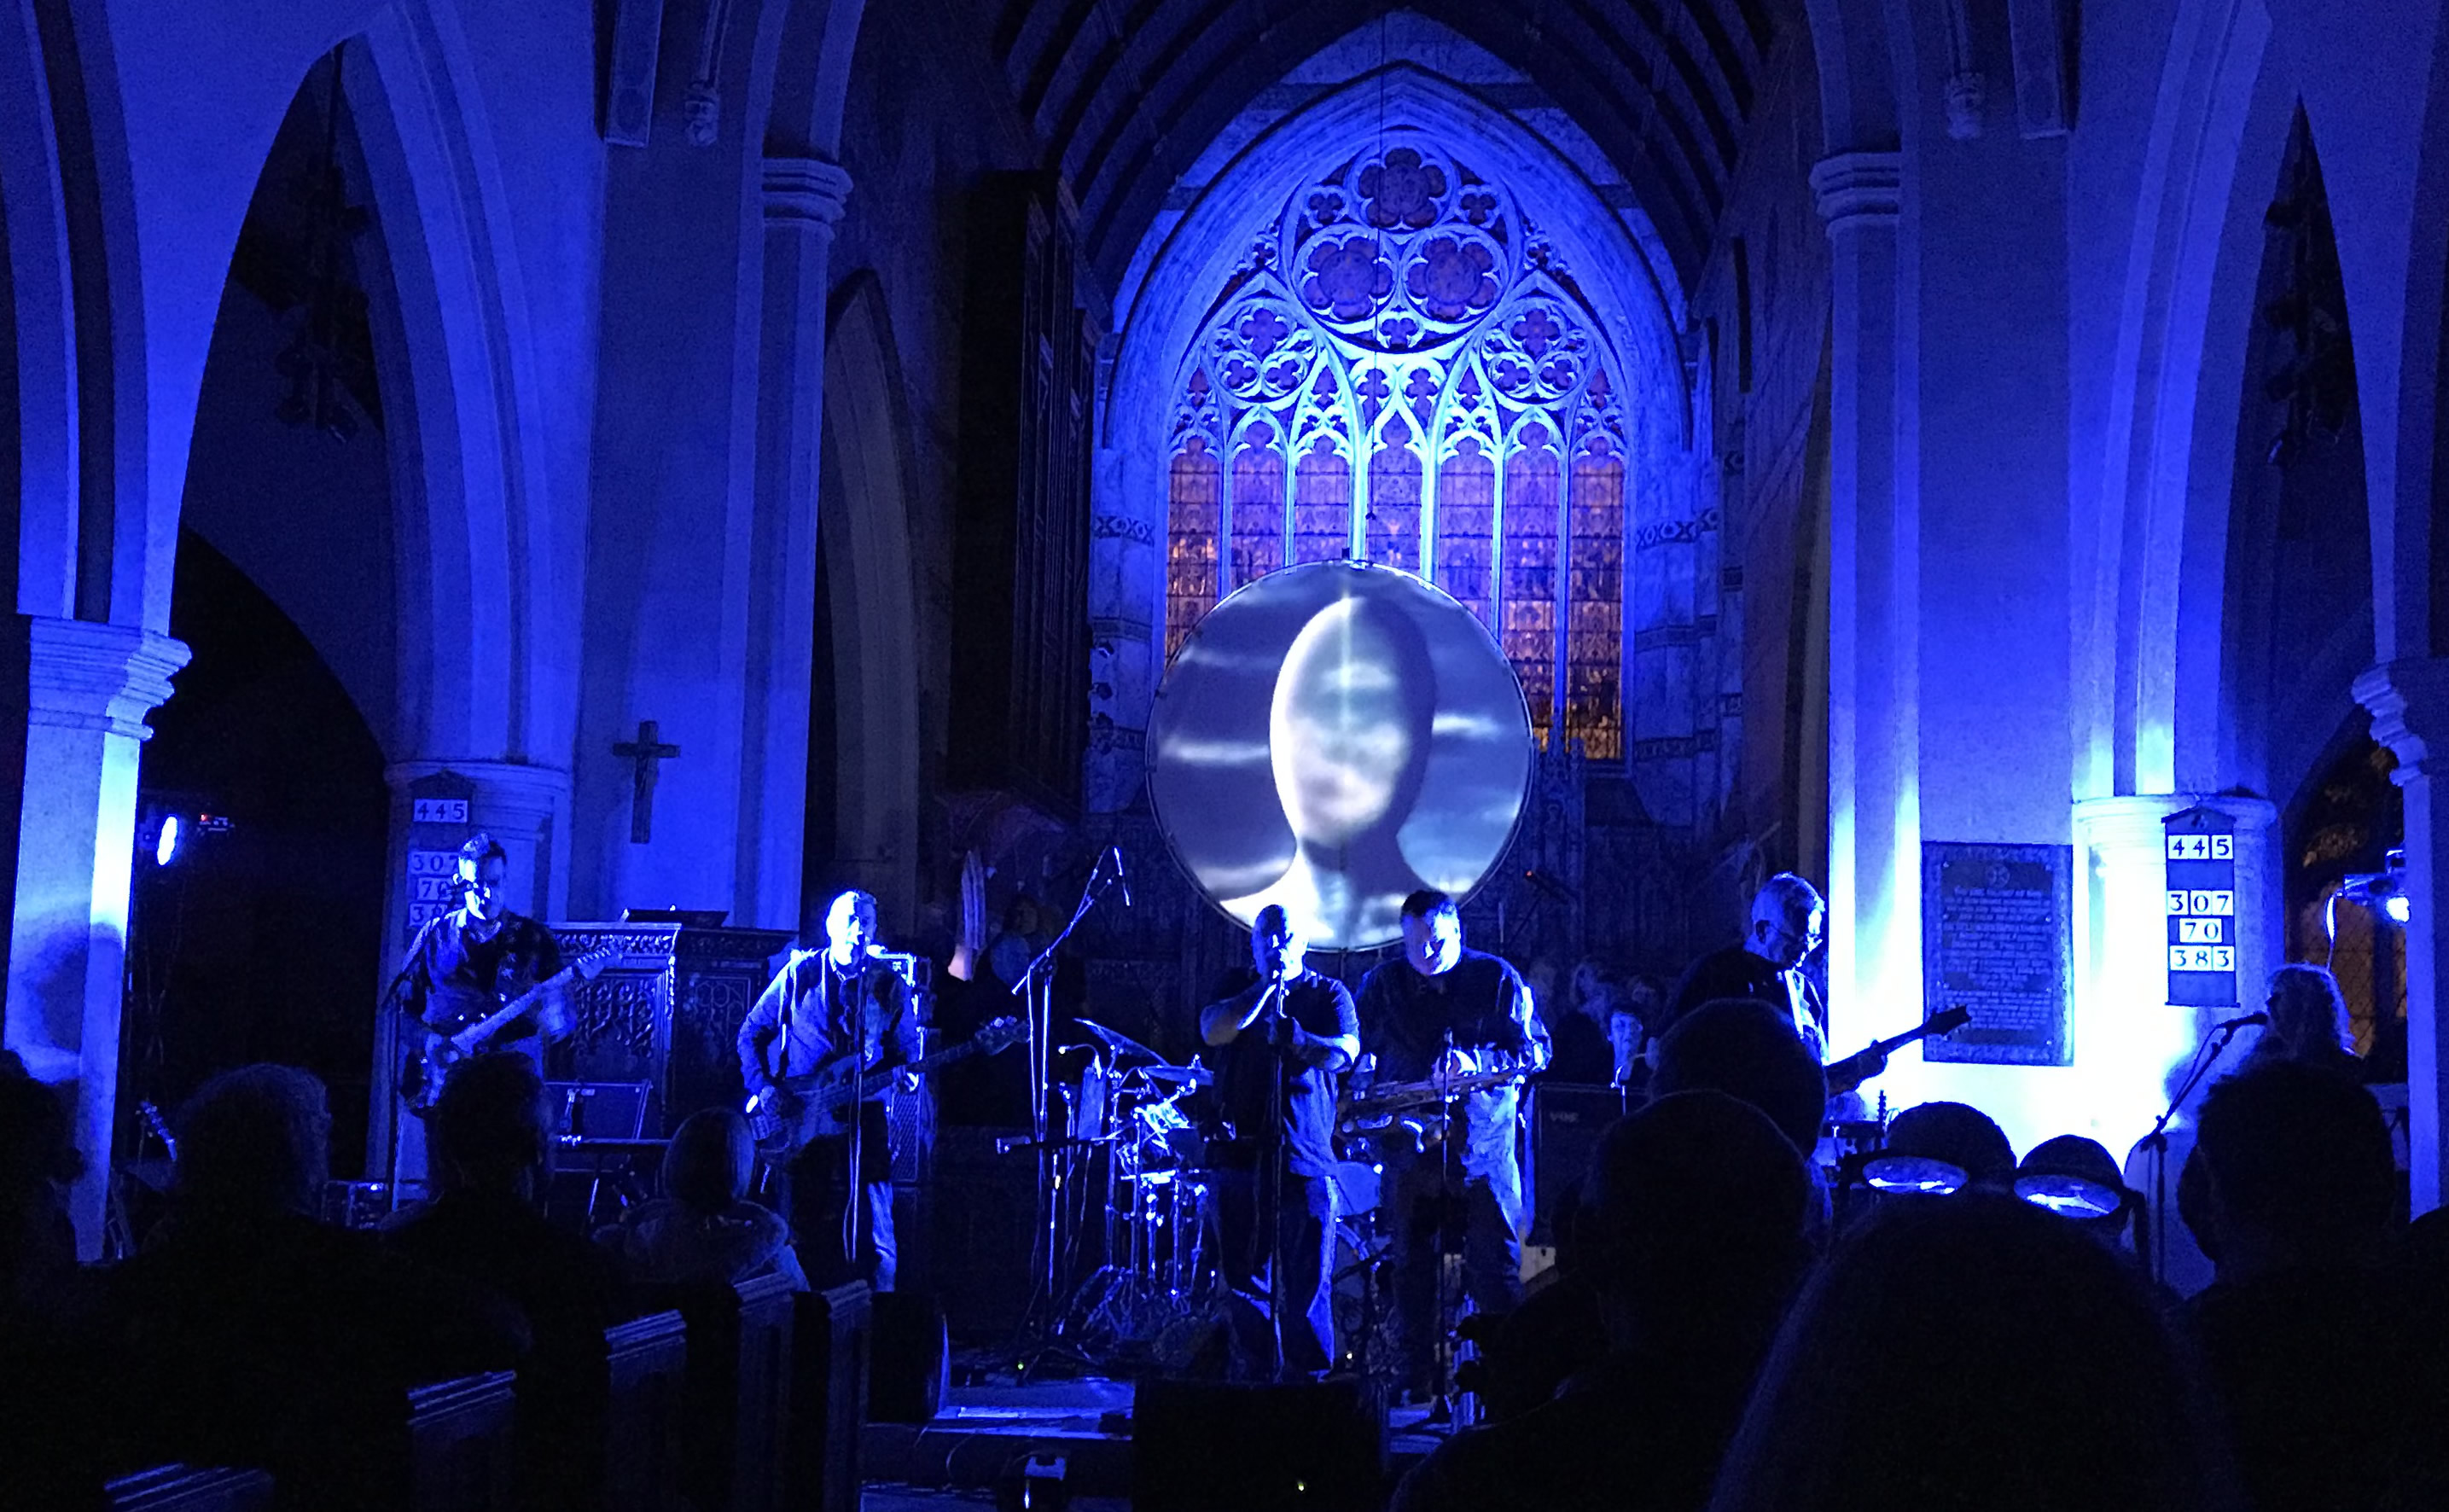 Live Music In Weybridge - Pink Floyd Tribute Band 'Any Colour You Like'